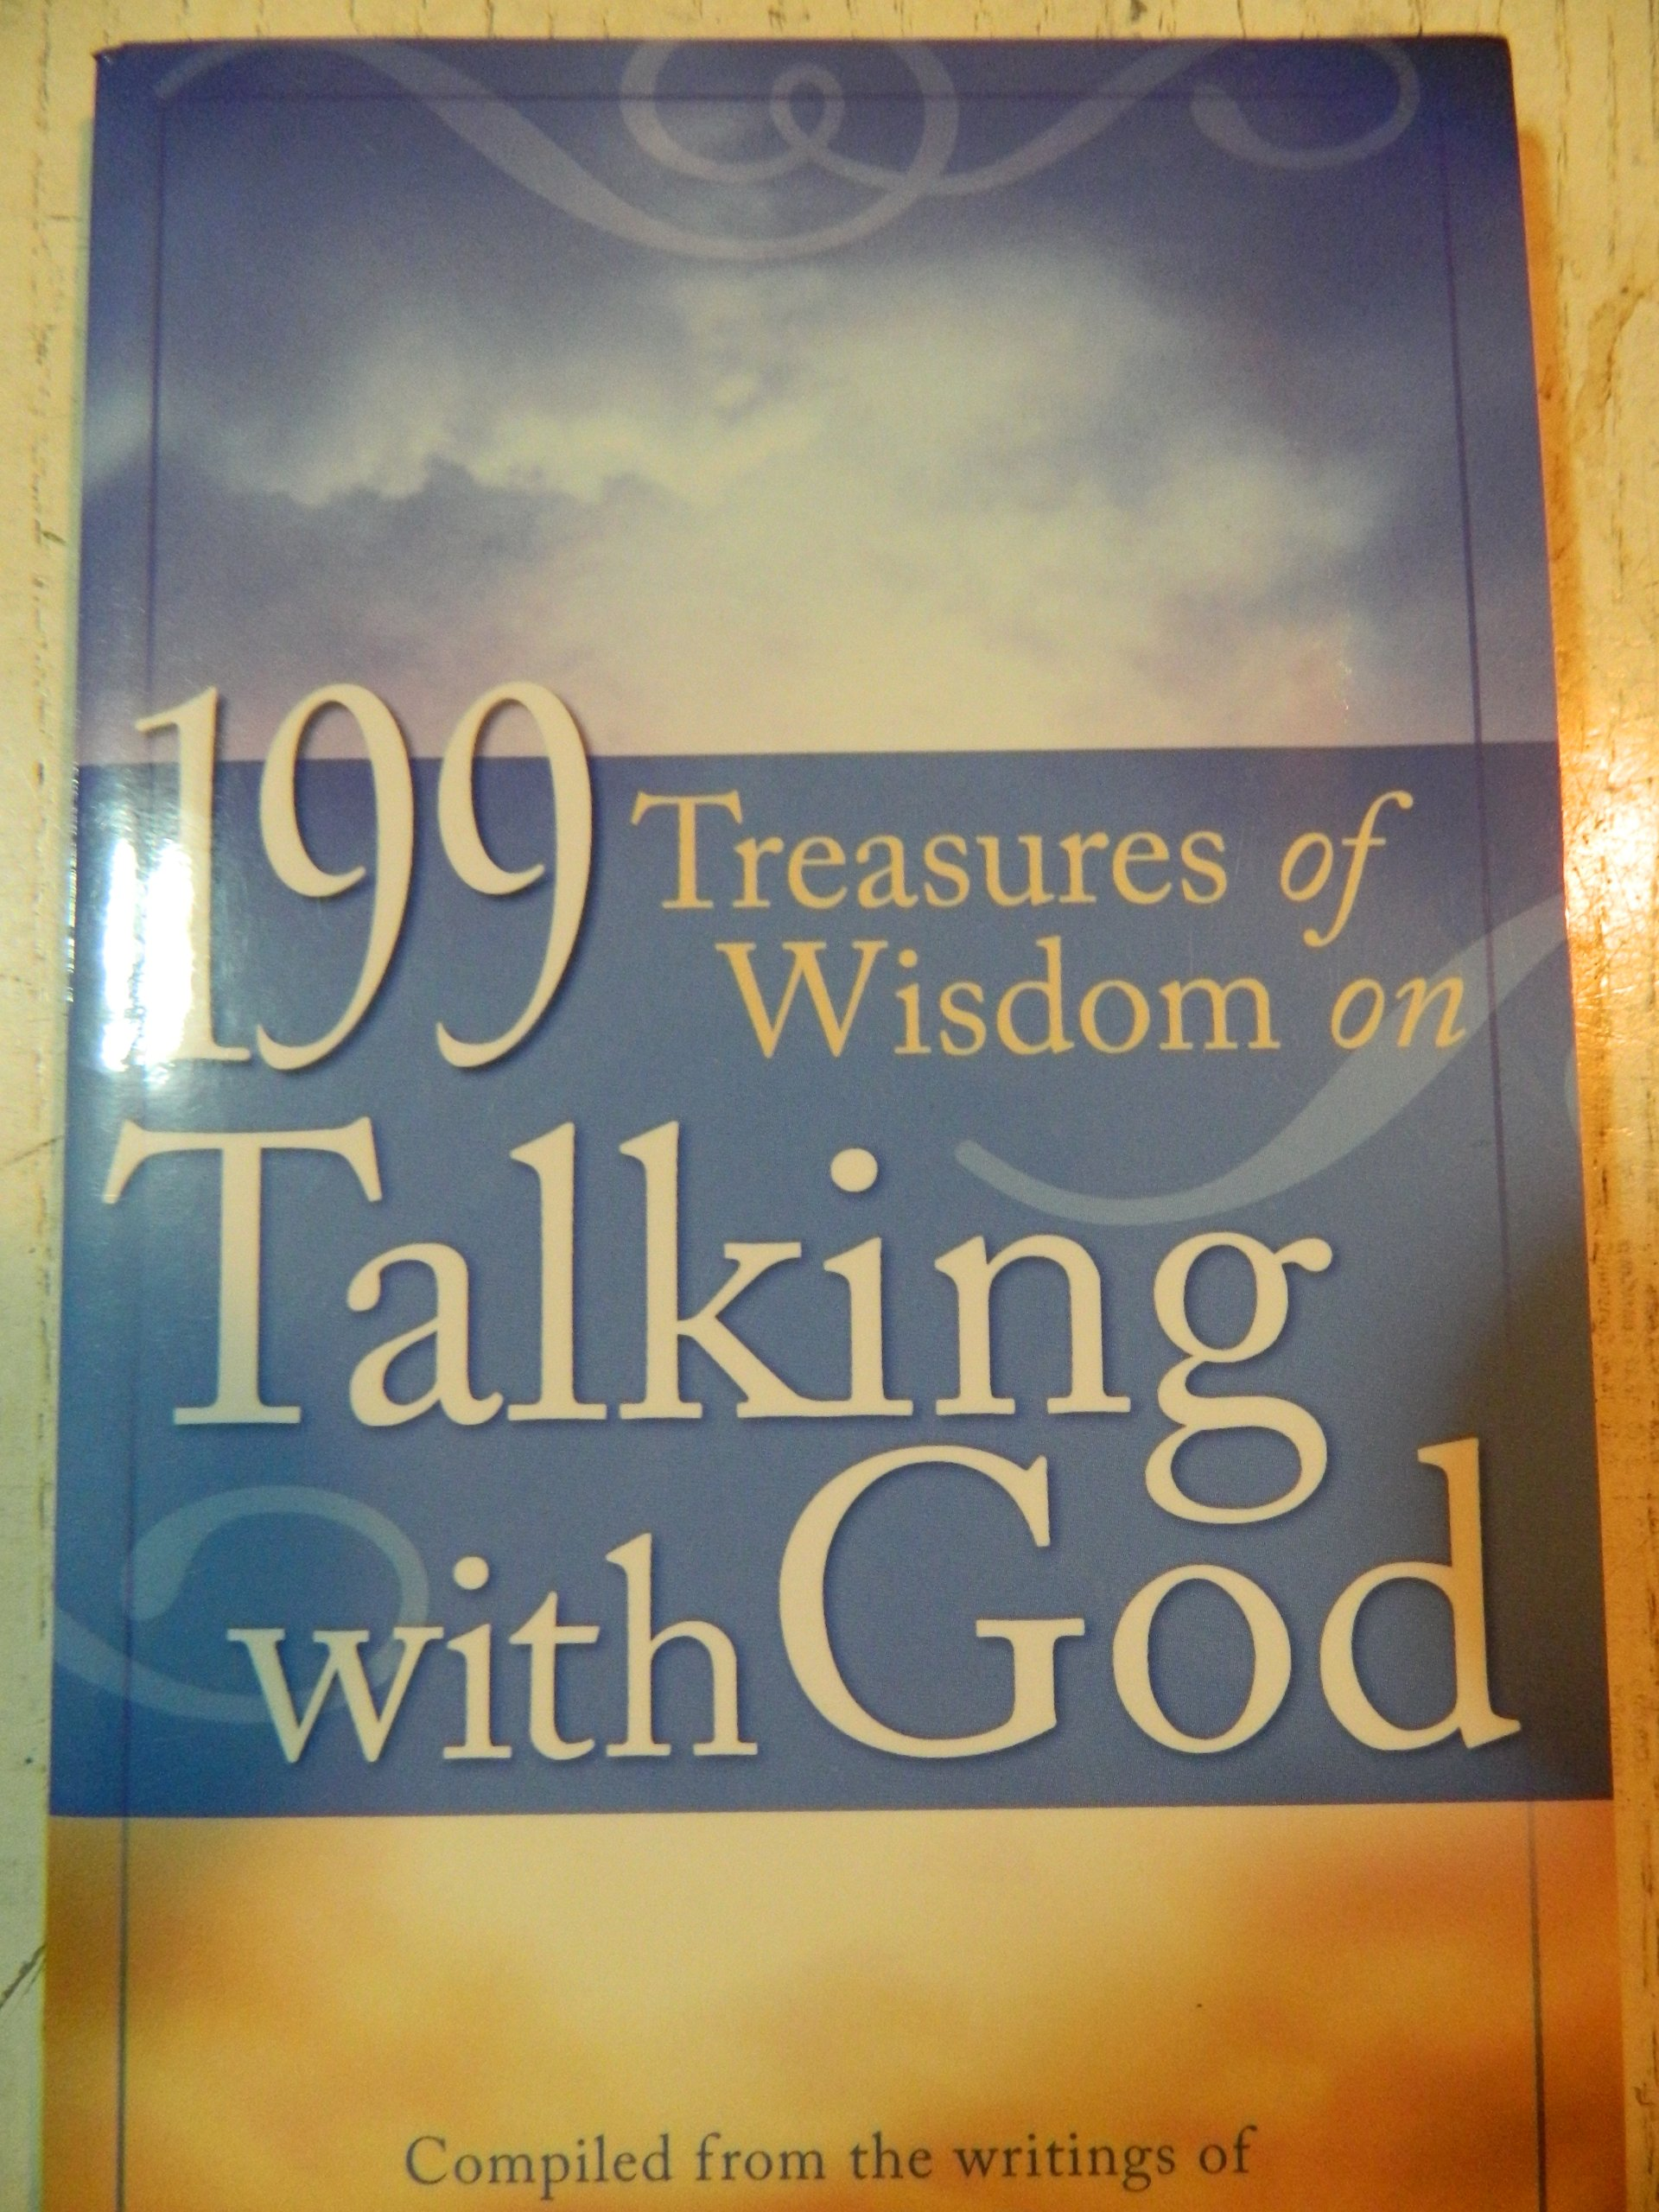 199 Treasures of Wisdom on Talking with God (Value Books): Amazon.com: Books